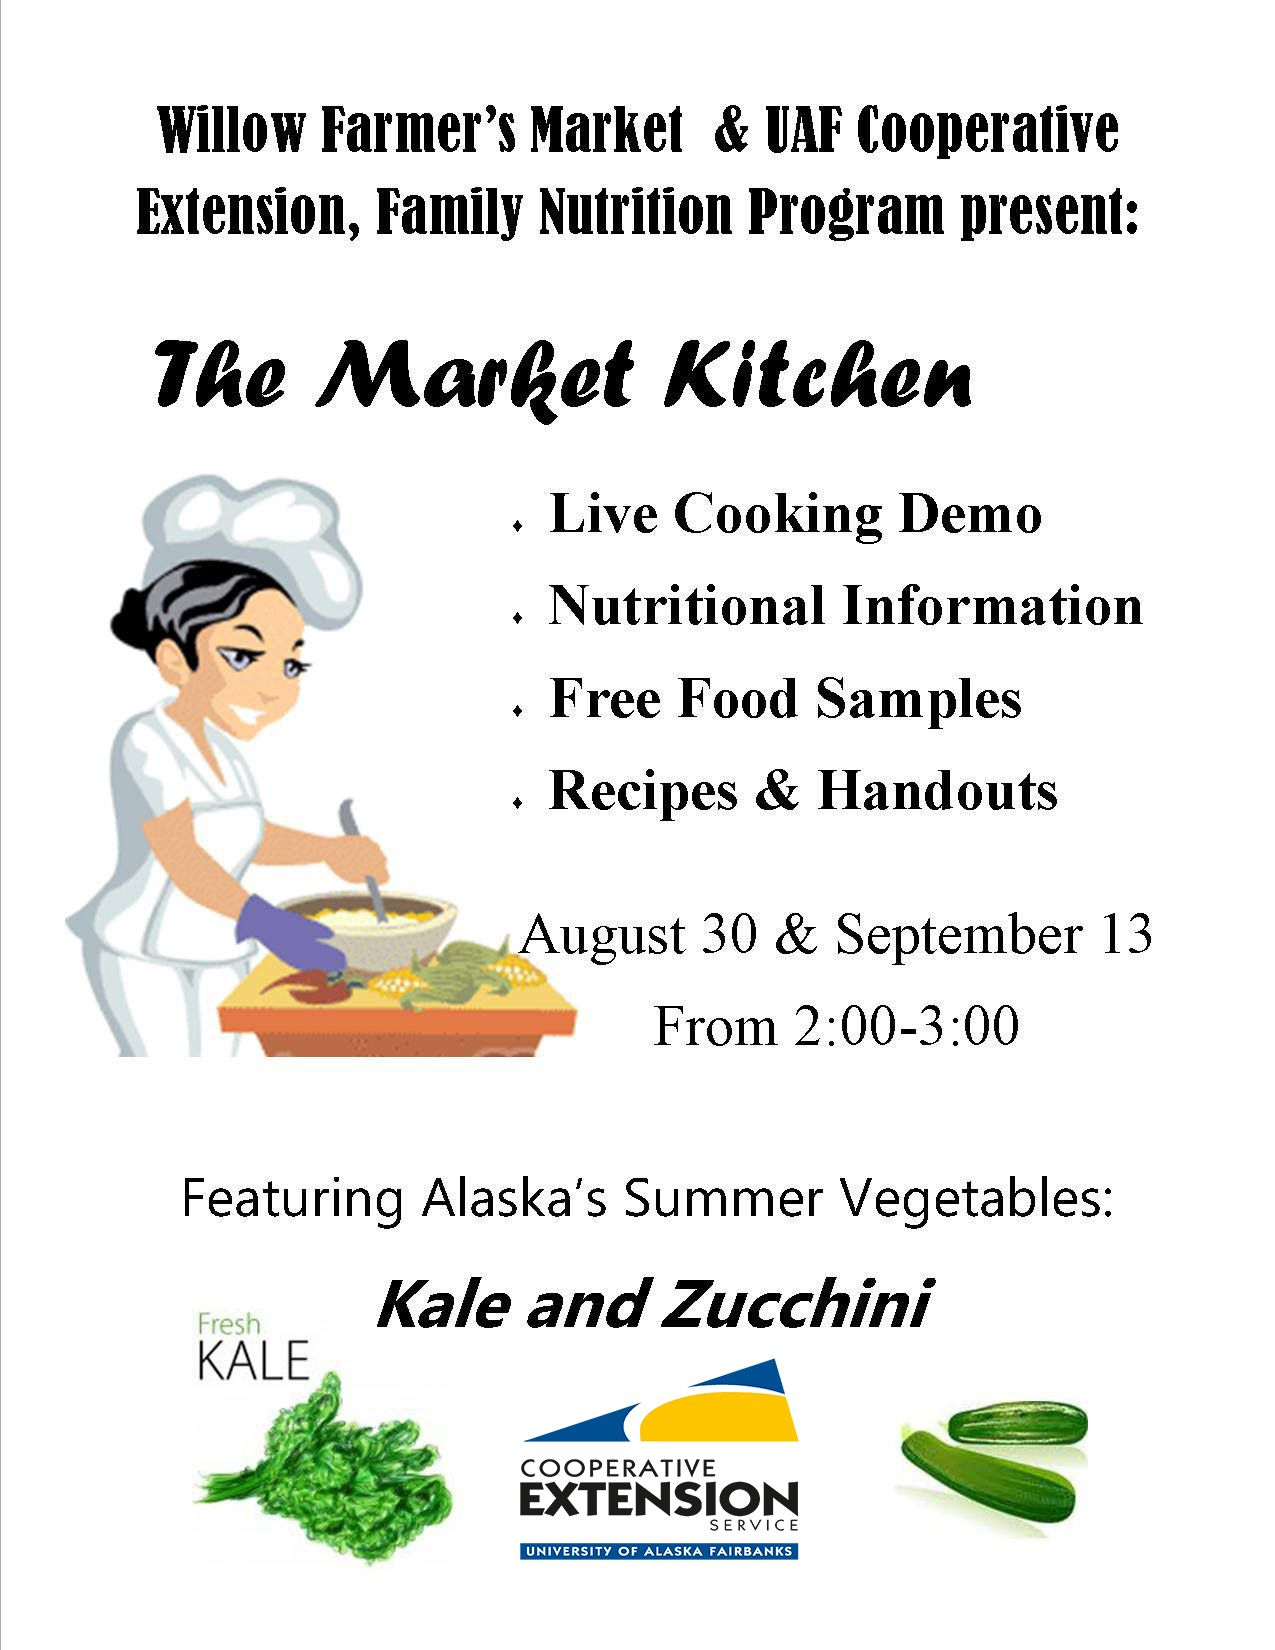 Cooking demo, samples and recipes free at the market! Aug. 30 & Sept. 13, 2013, Willow